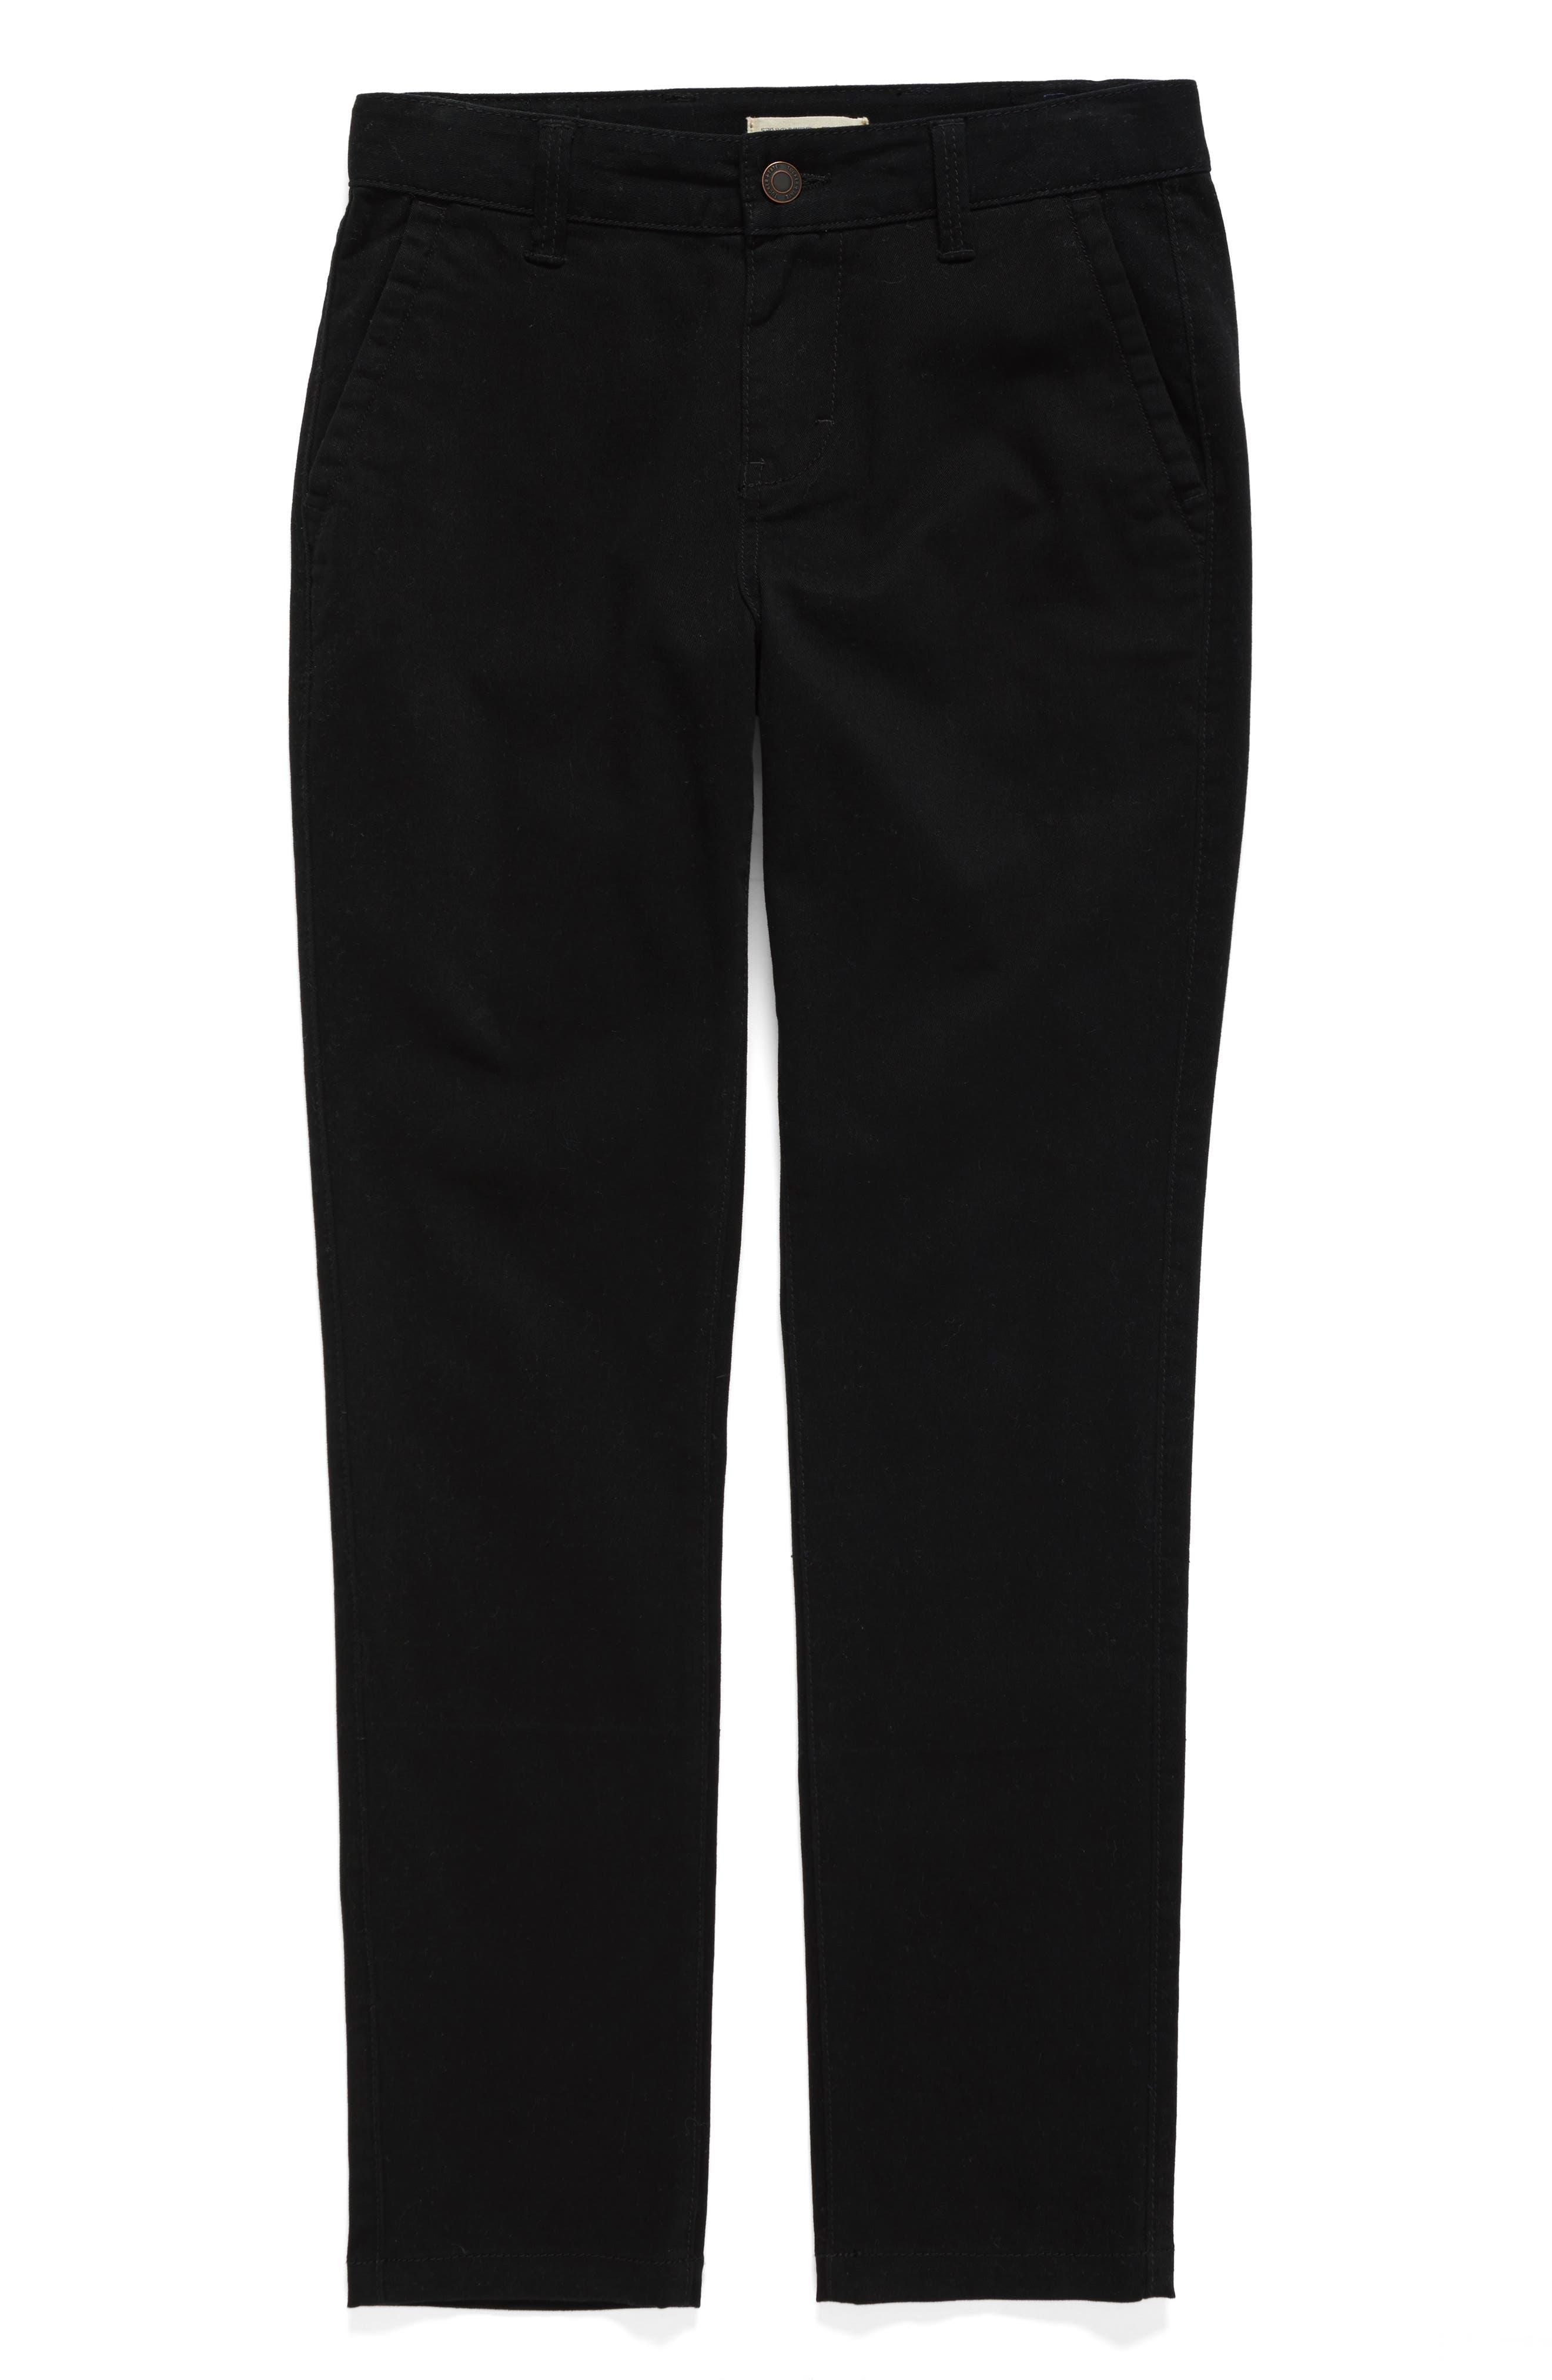 Tucker + Tate Chino Pants (Toddler Boys, Little Boys & Big Boys)